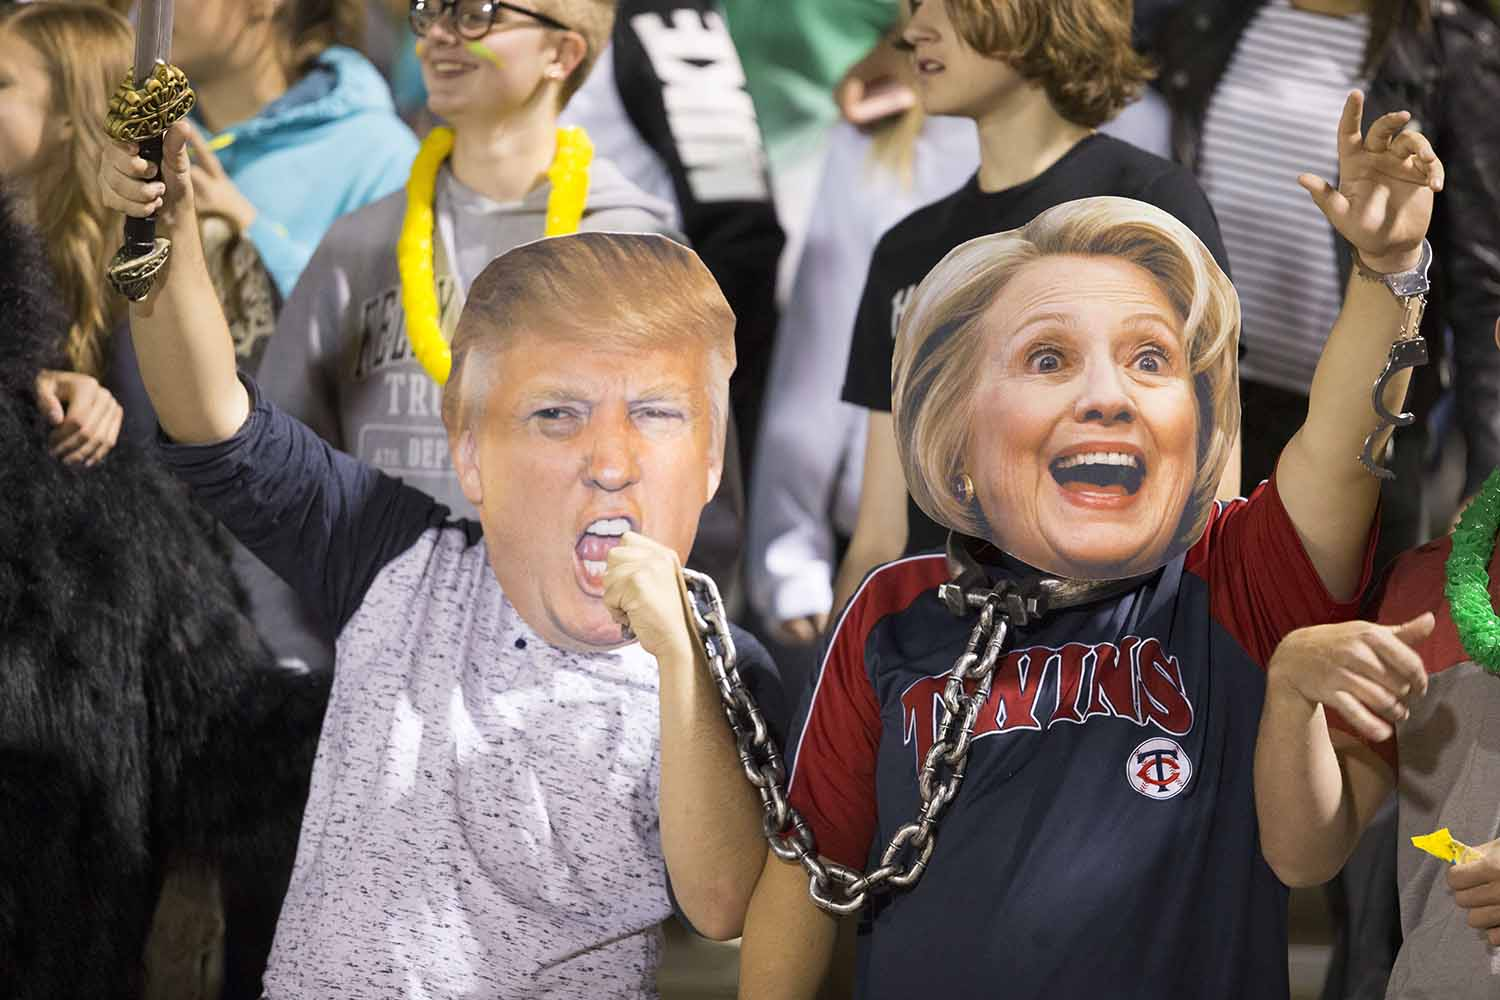 Juniors Thayne Macy and Willis Schneider don Hillary Clinton and Donald Trump masks at the home football game against Cheyenne south.  The presidential election has been the story of the year nationally and locally too.